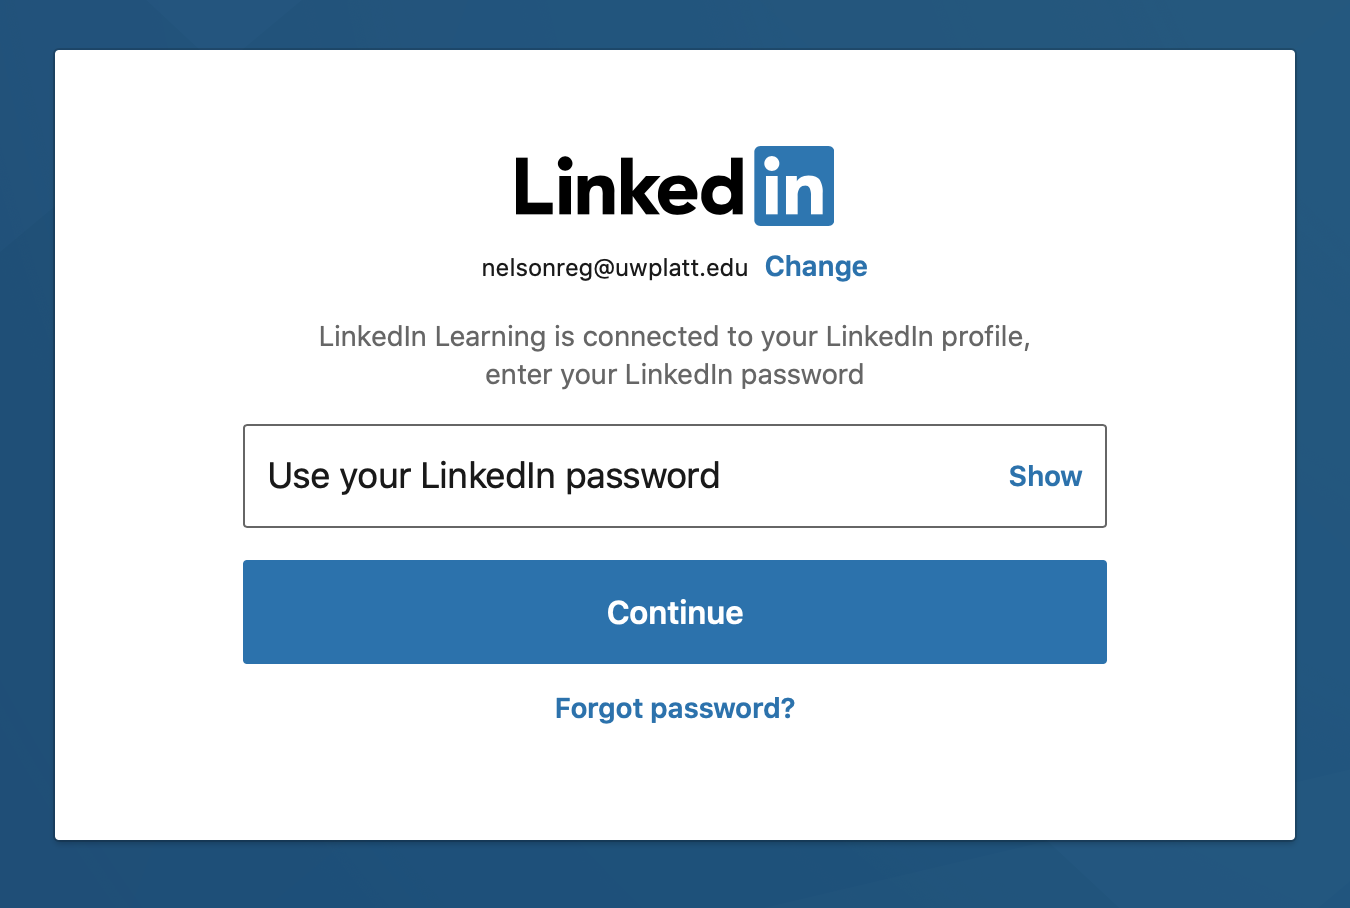 Enter LinkedIn password